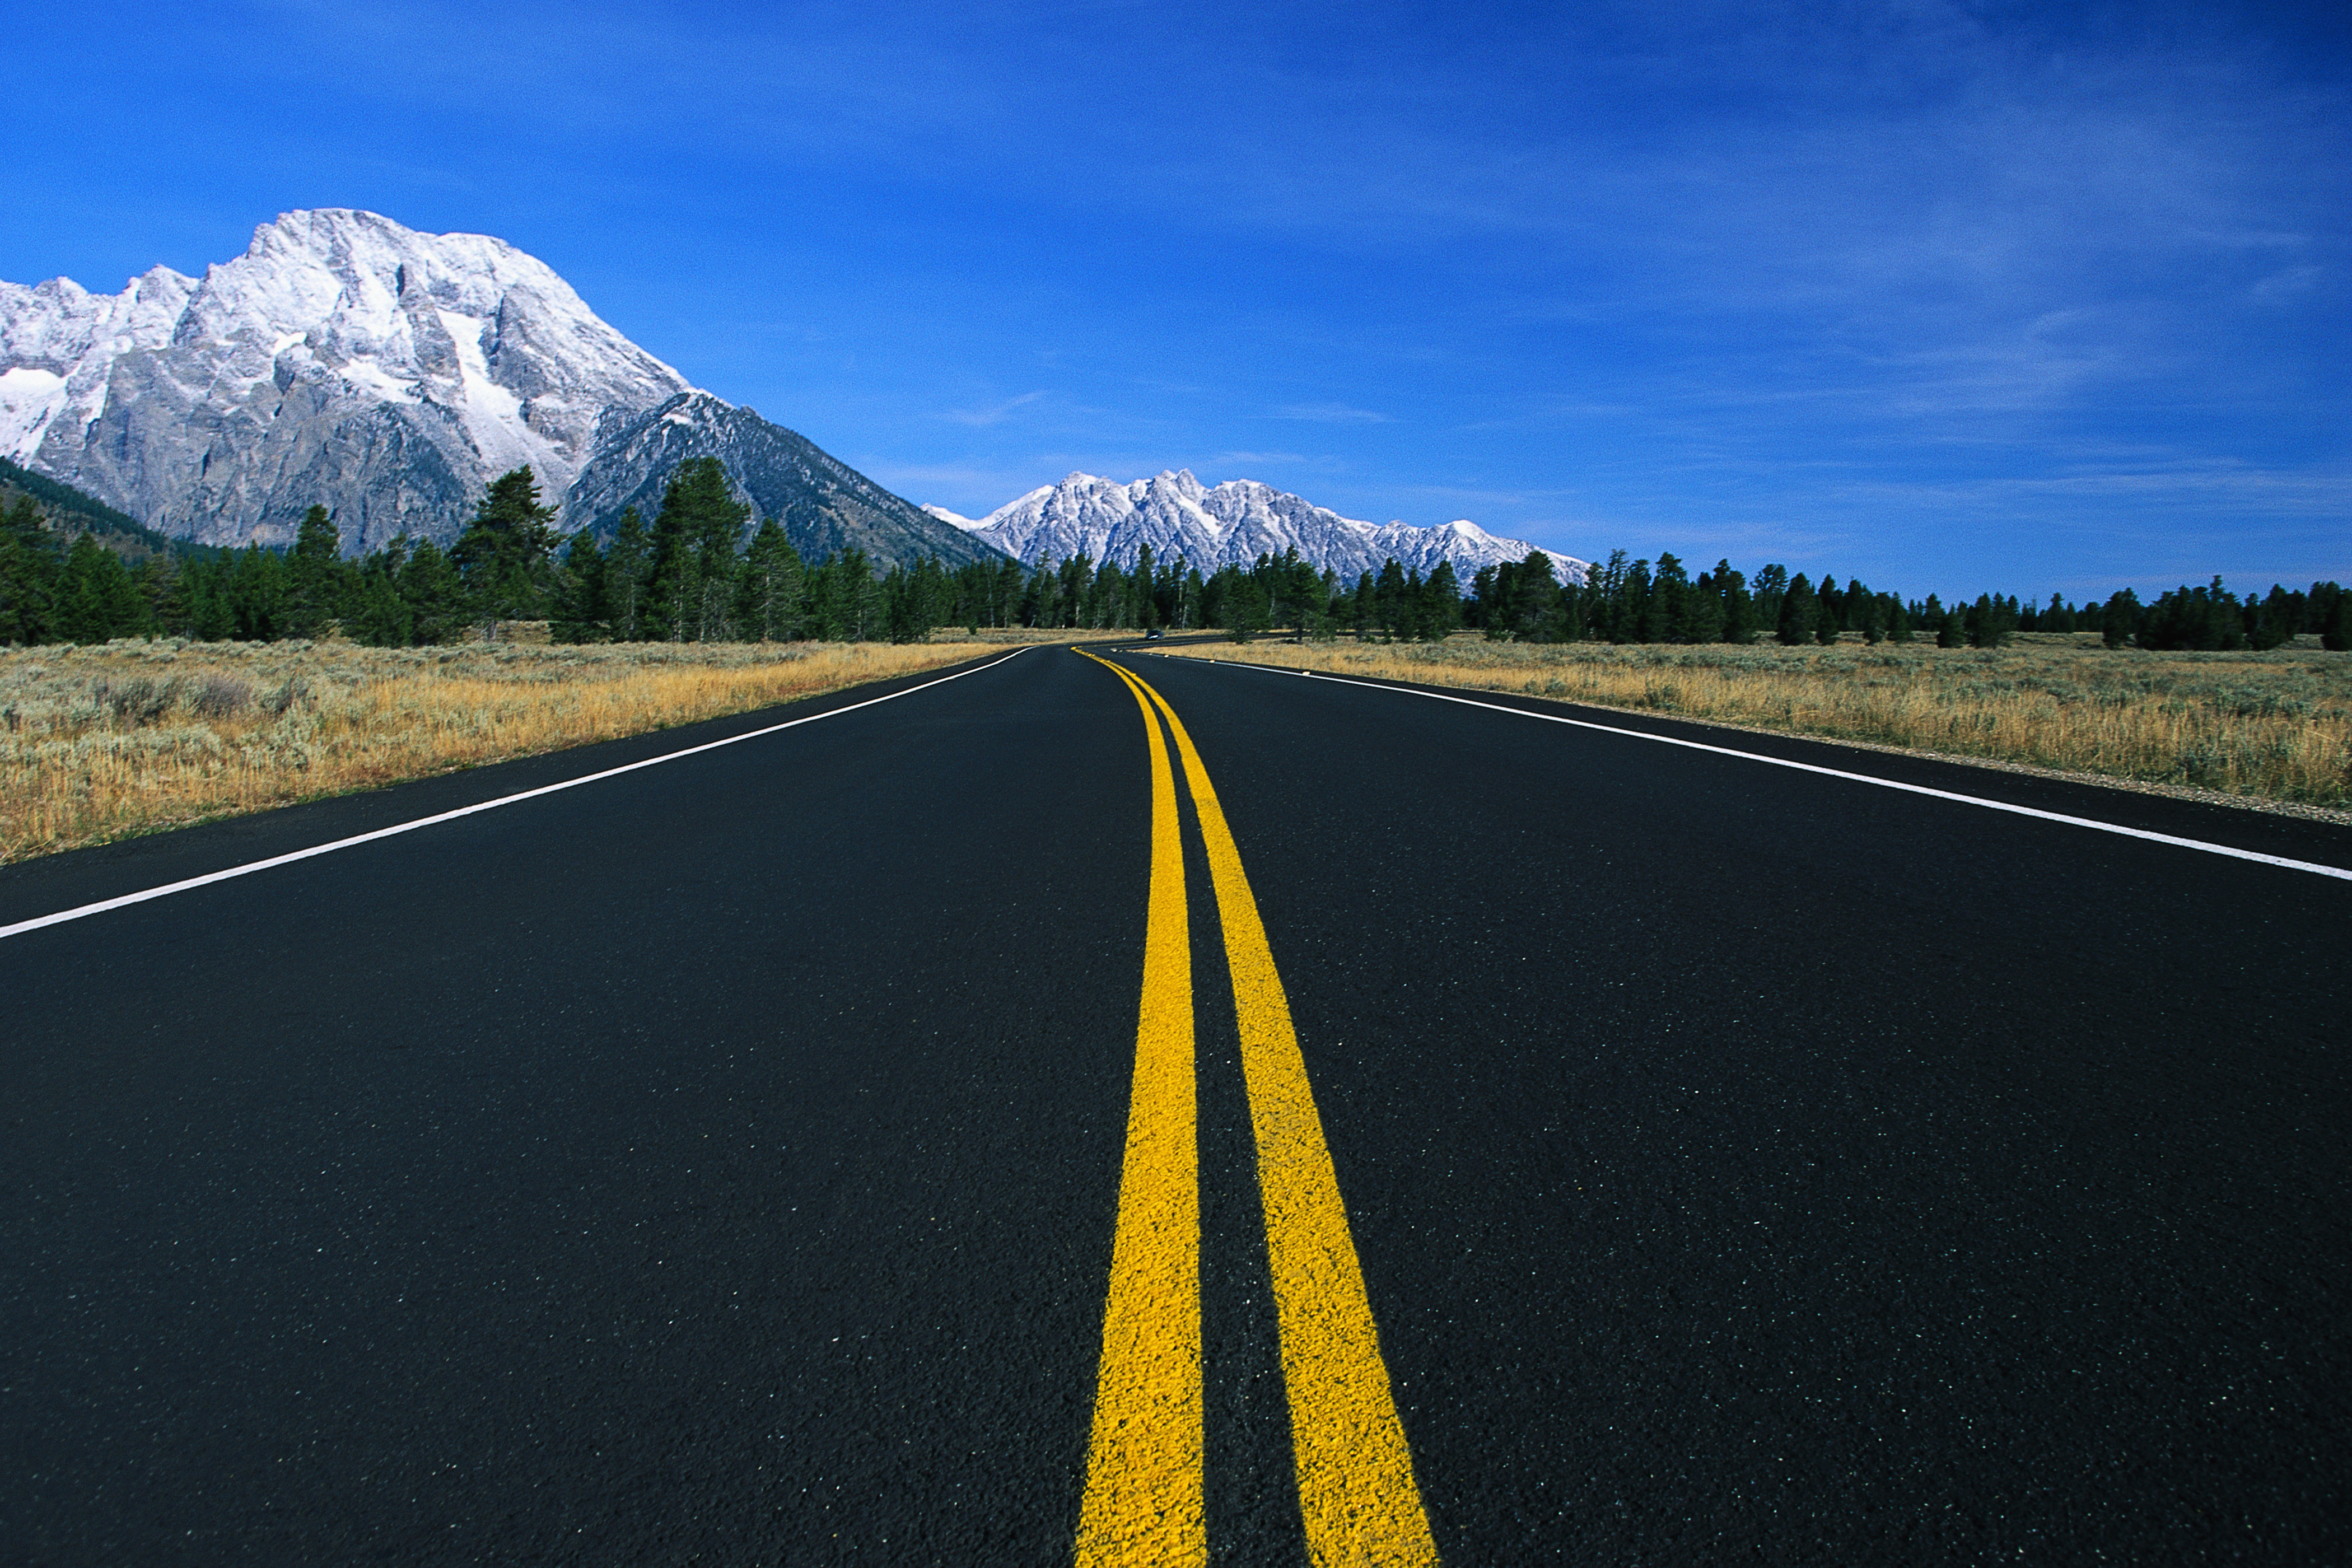 Smooth Road Leading into Mountains 4653.75 Kb